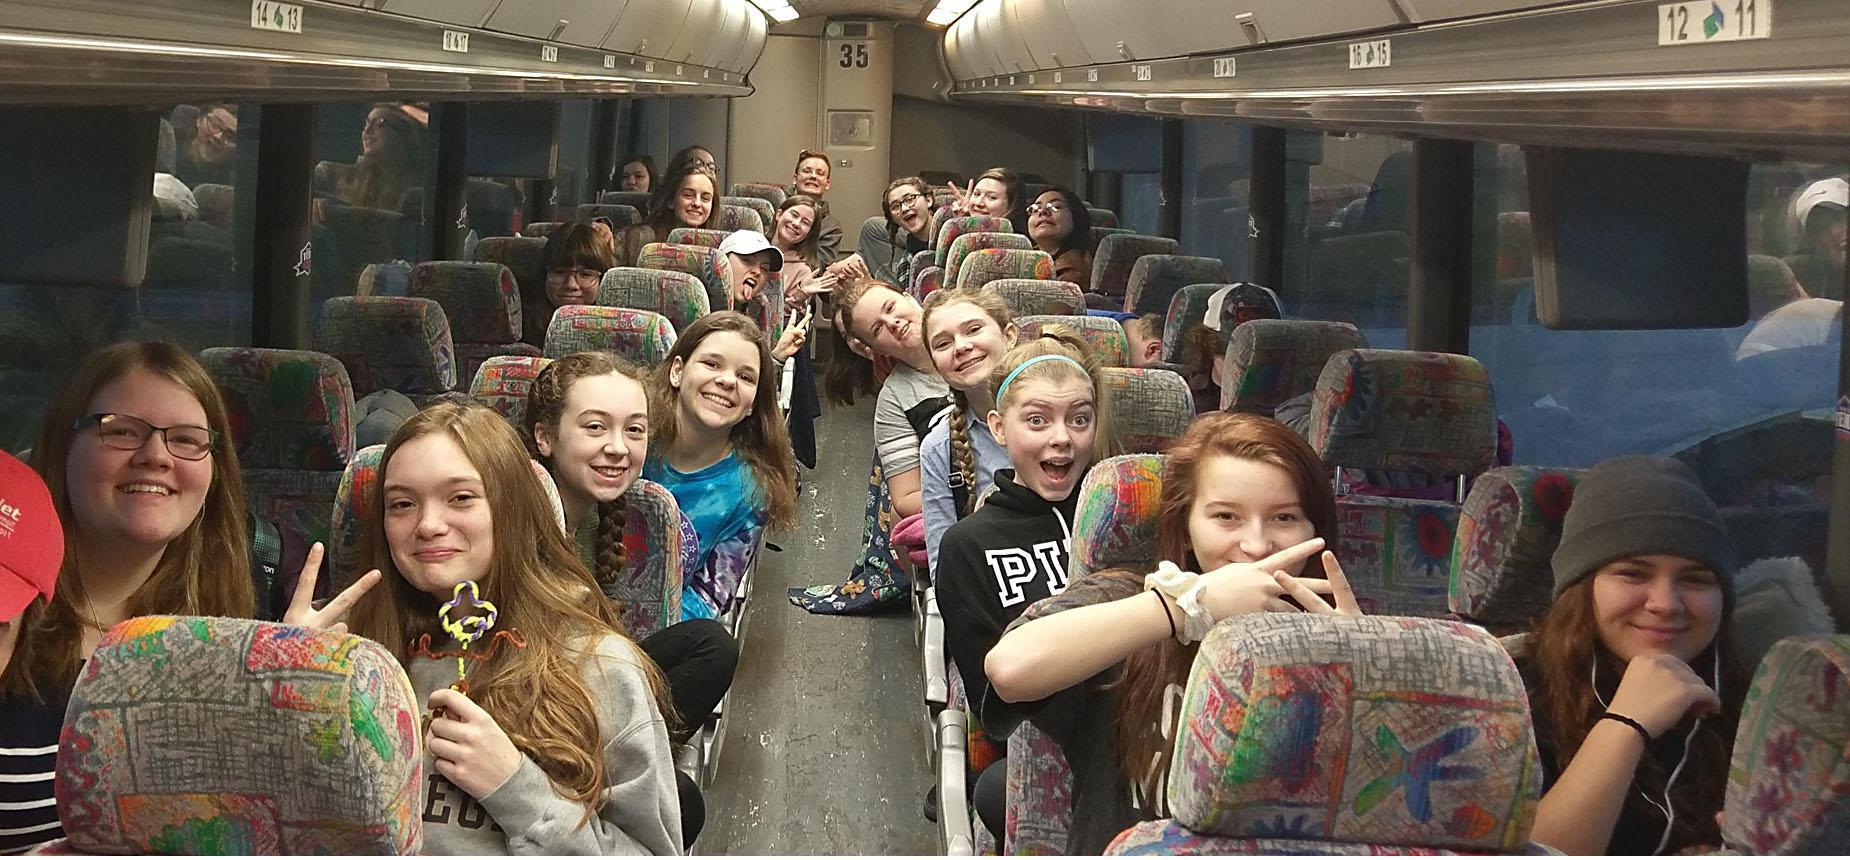 Chorus group on a bus headed to Boston